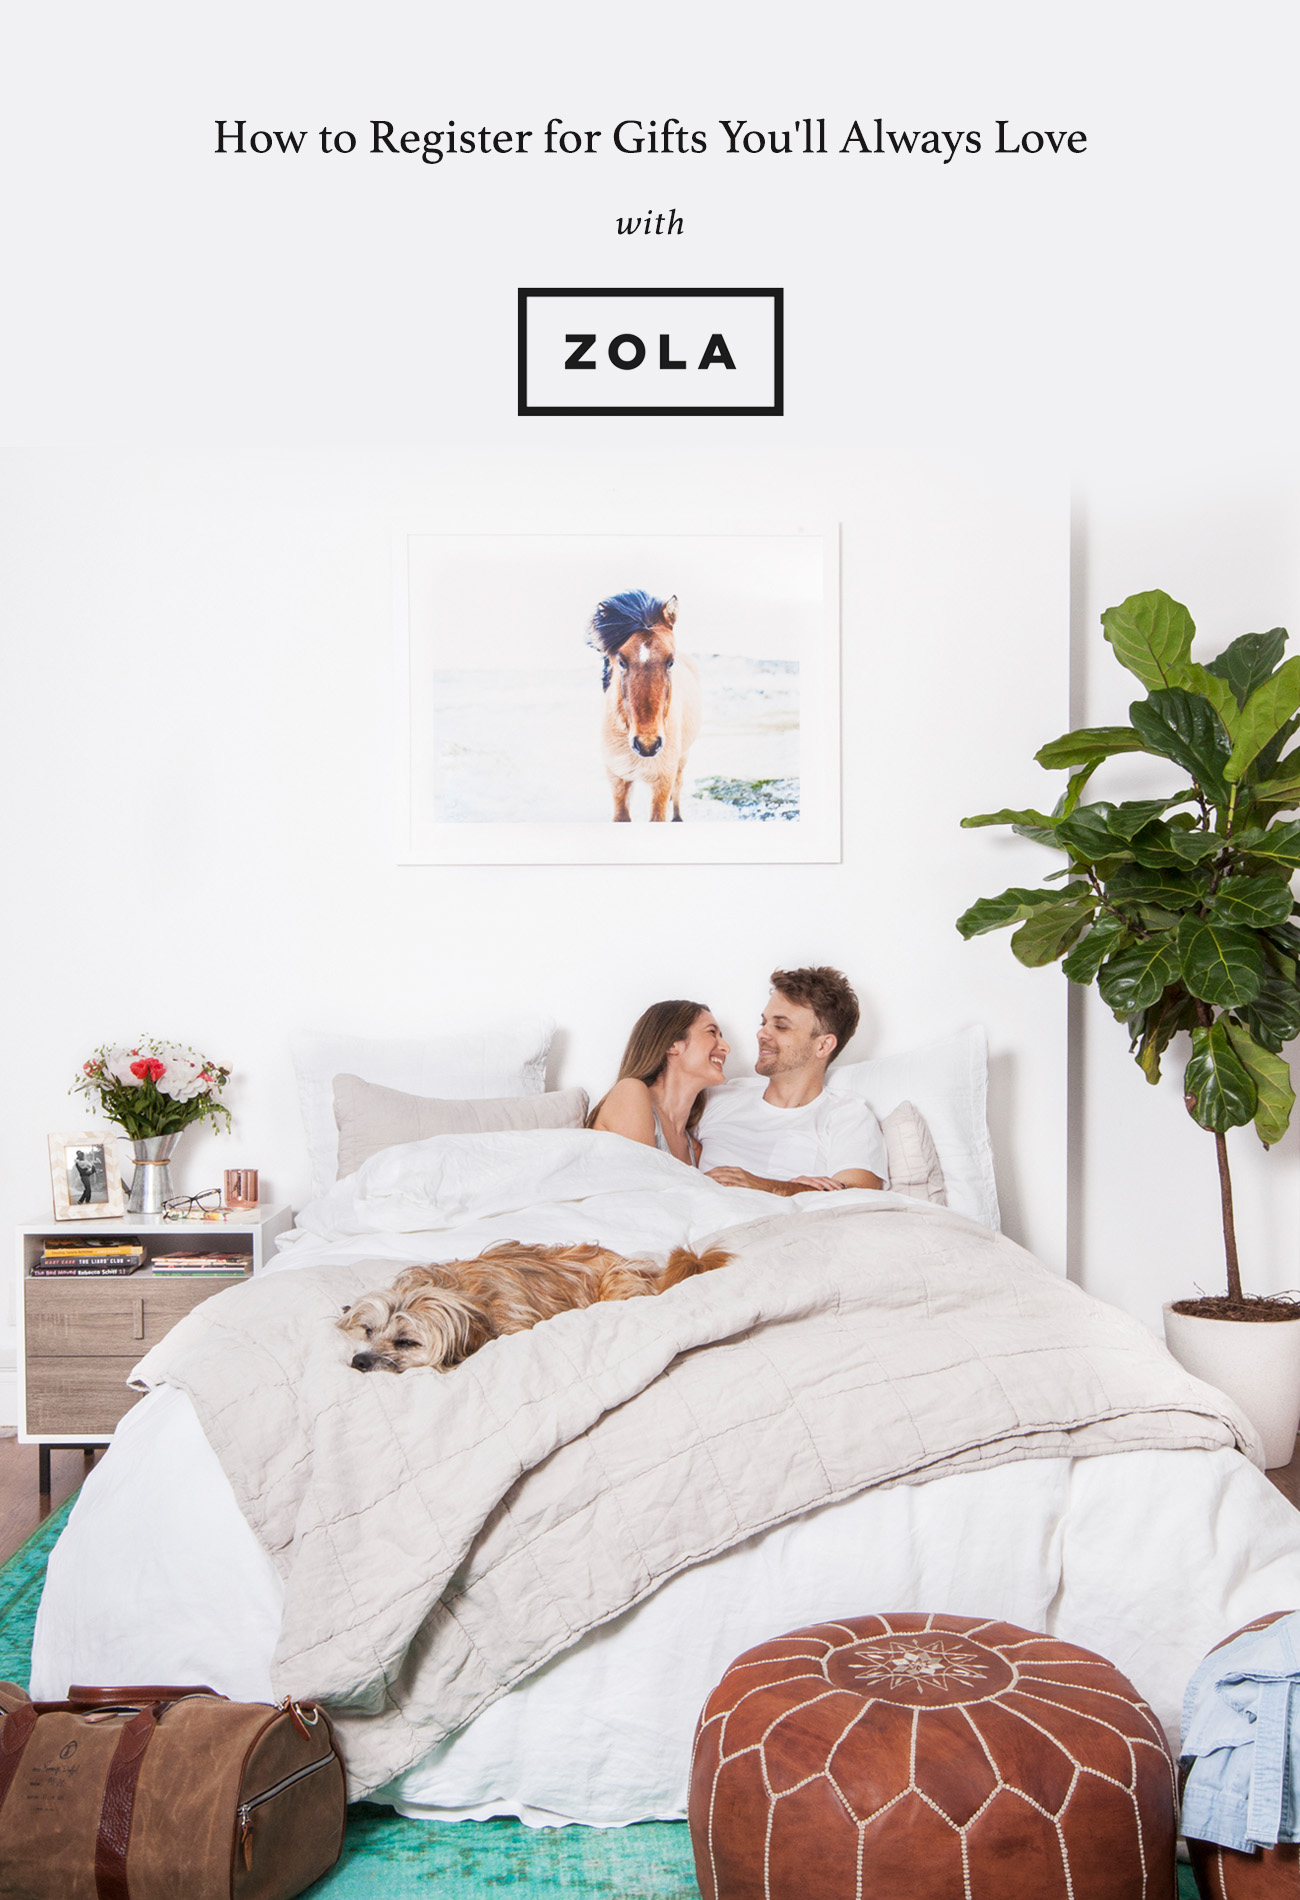 How to Register for Gifts you'll Love with ZOLA